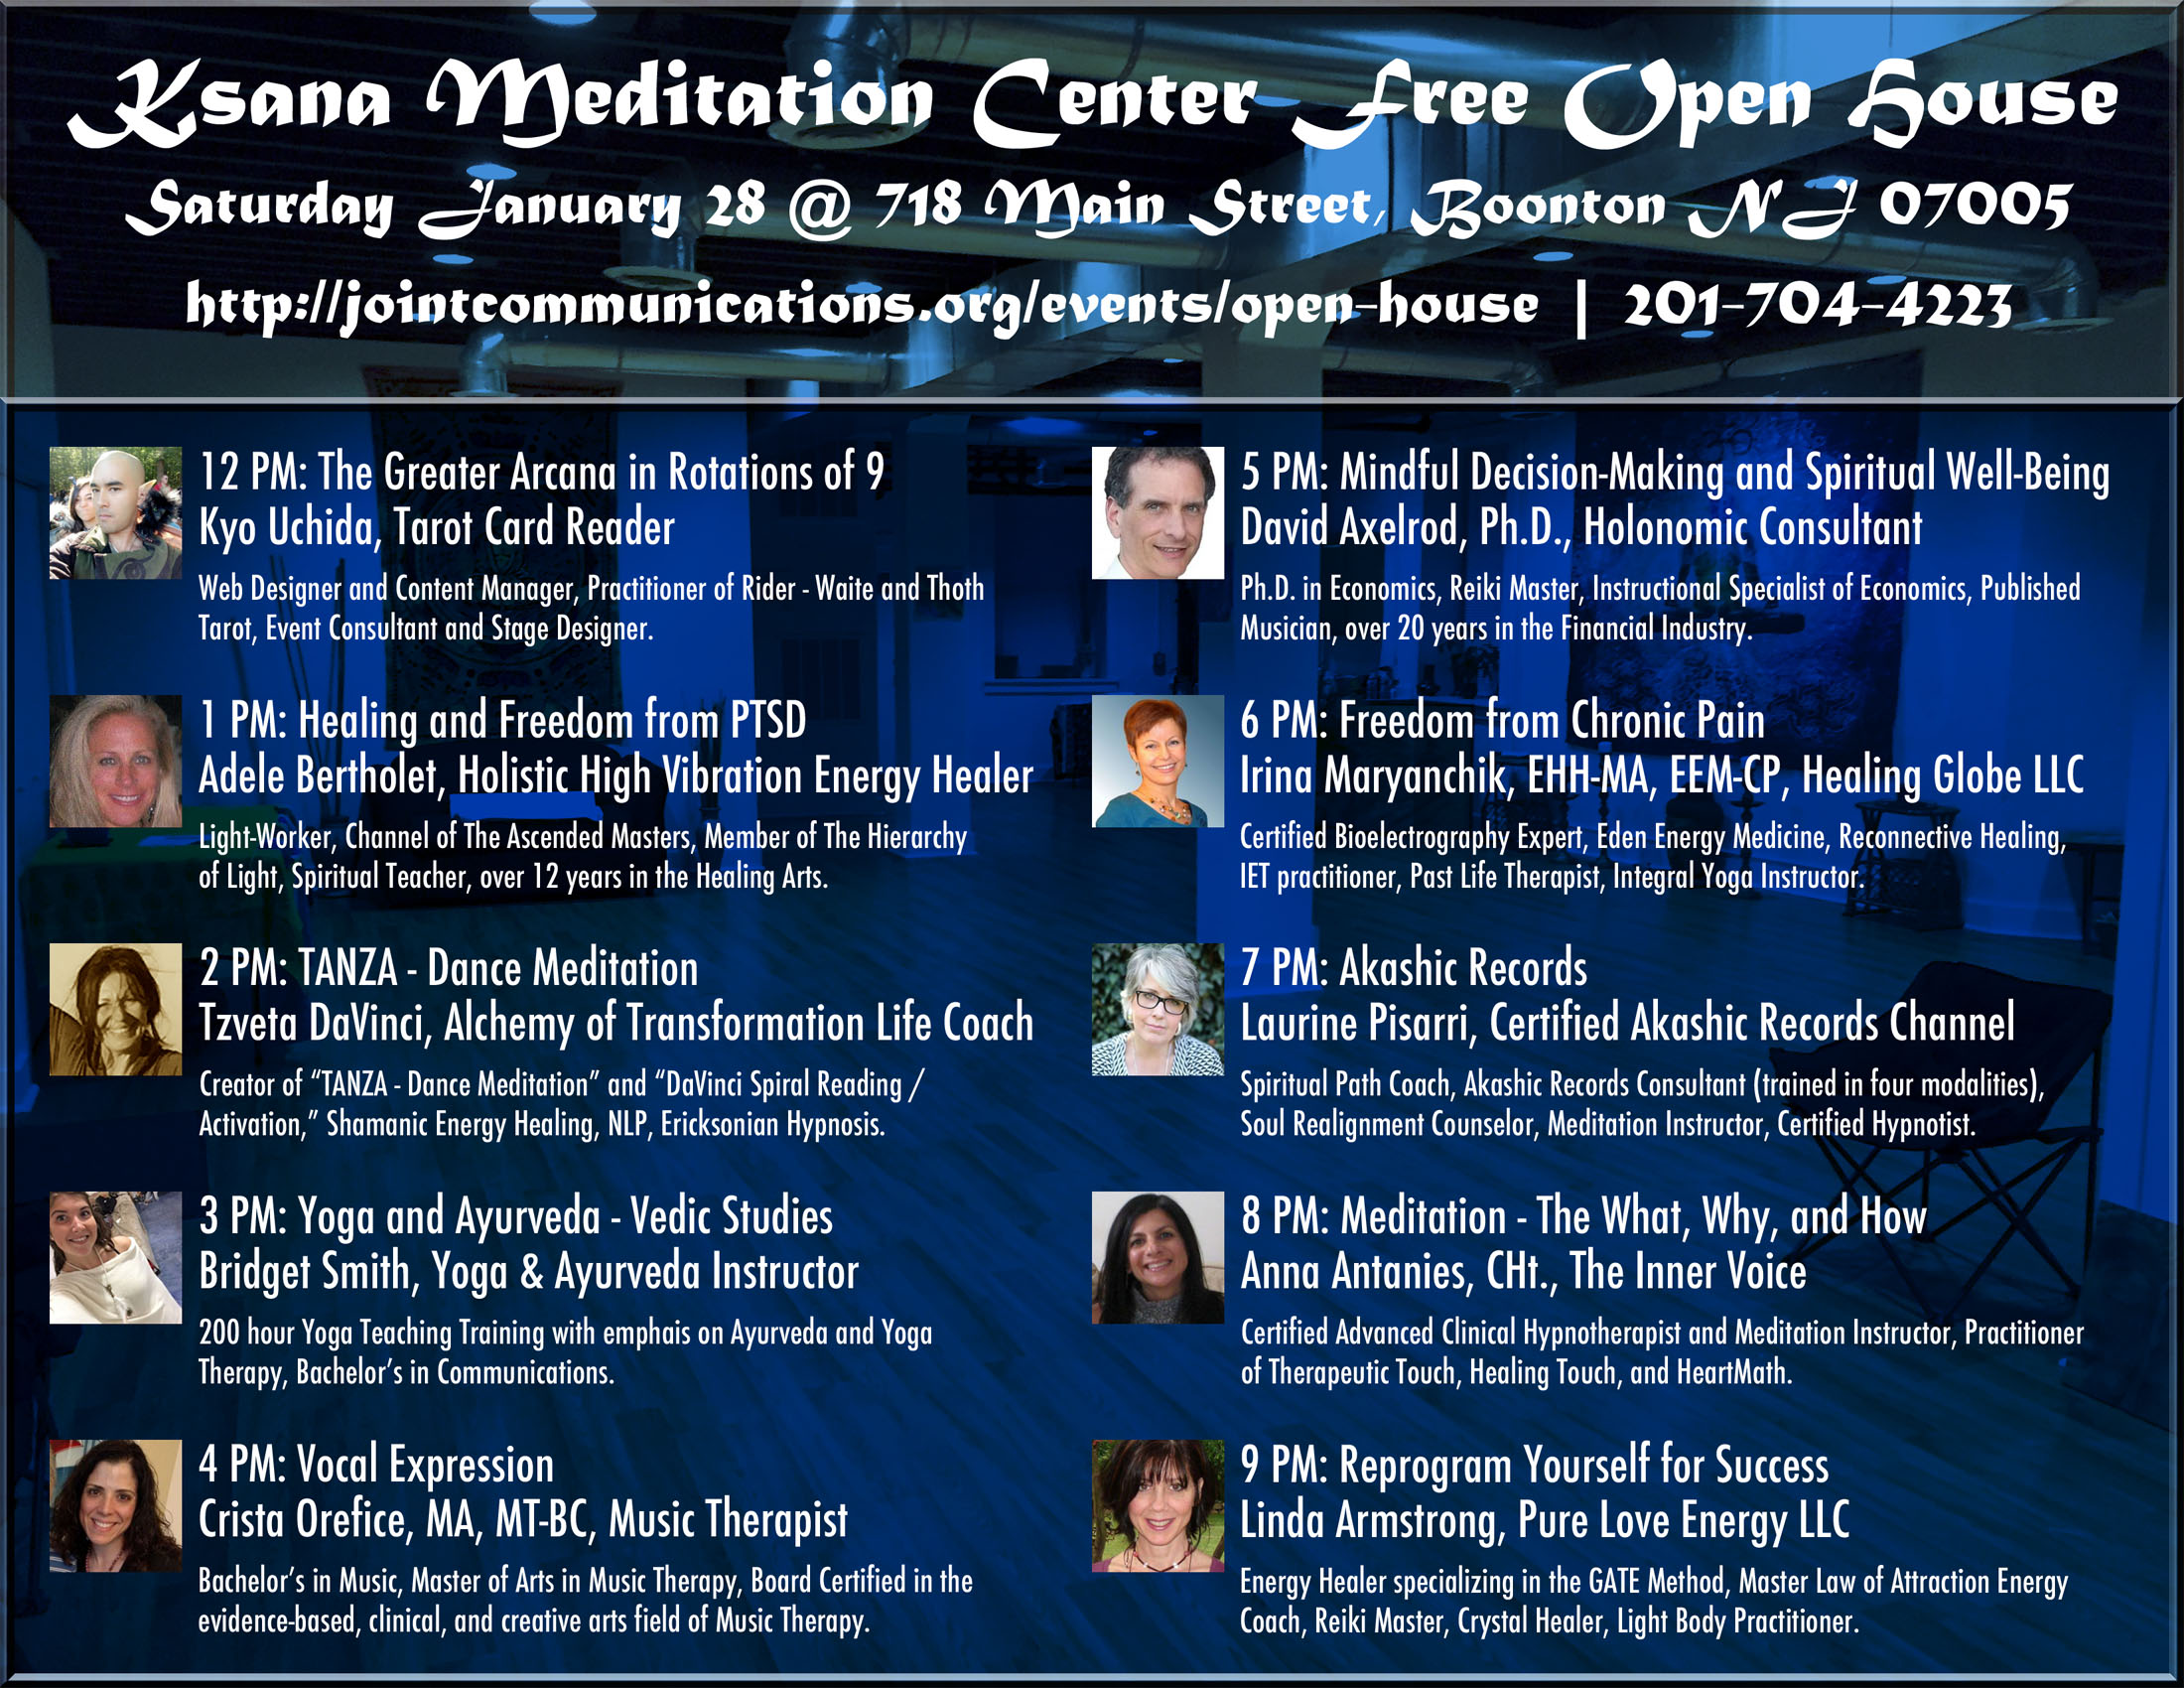 Open House - Ksana Meditation Center - An Open Space for Healing & Growth